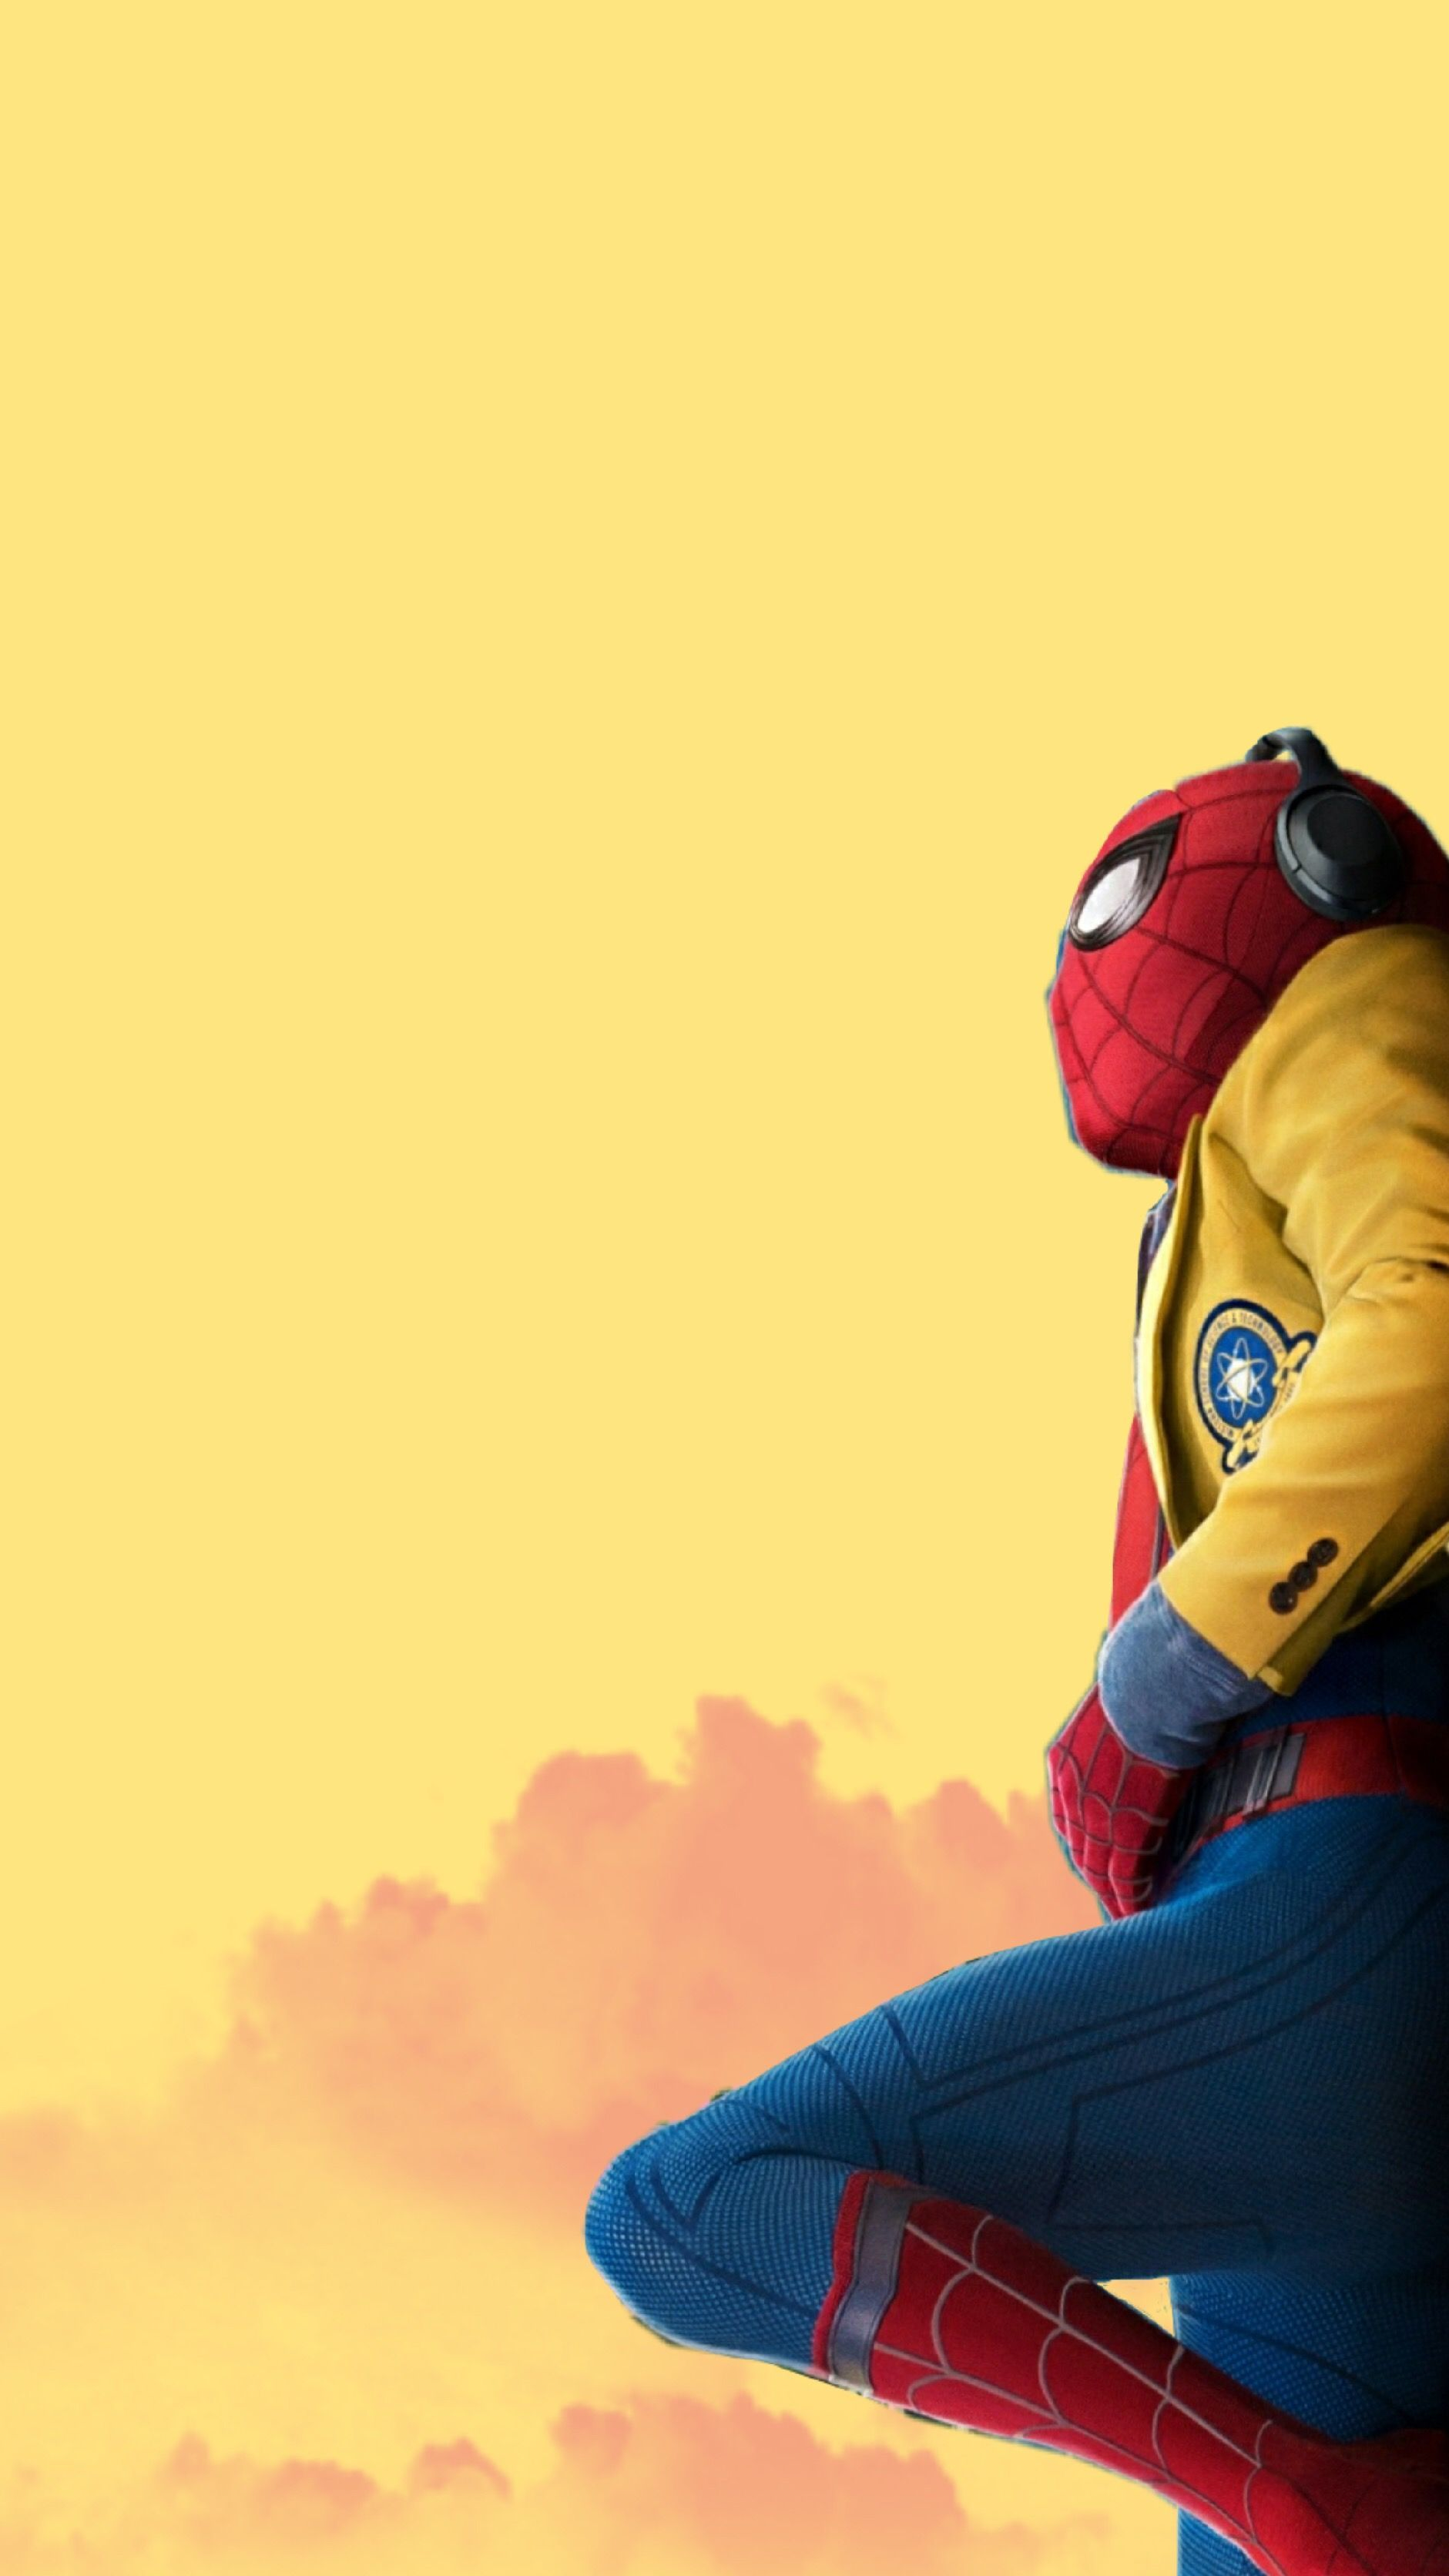 Get Most Downloaded Marvel Wallpaper for Smartphones Today 1881x3344